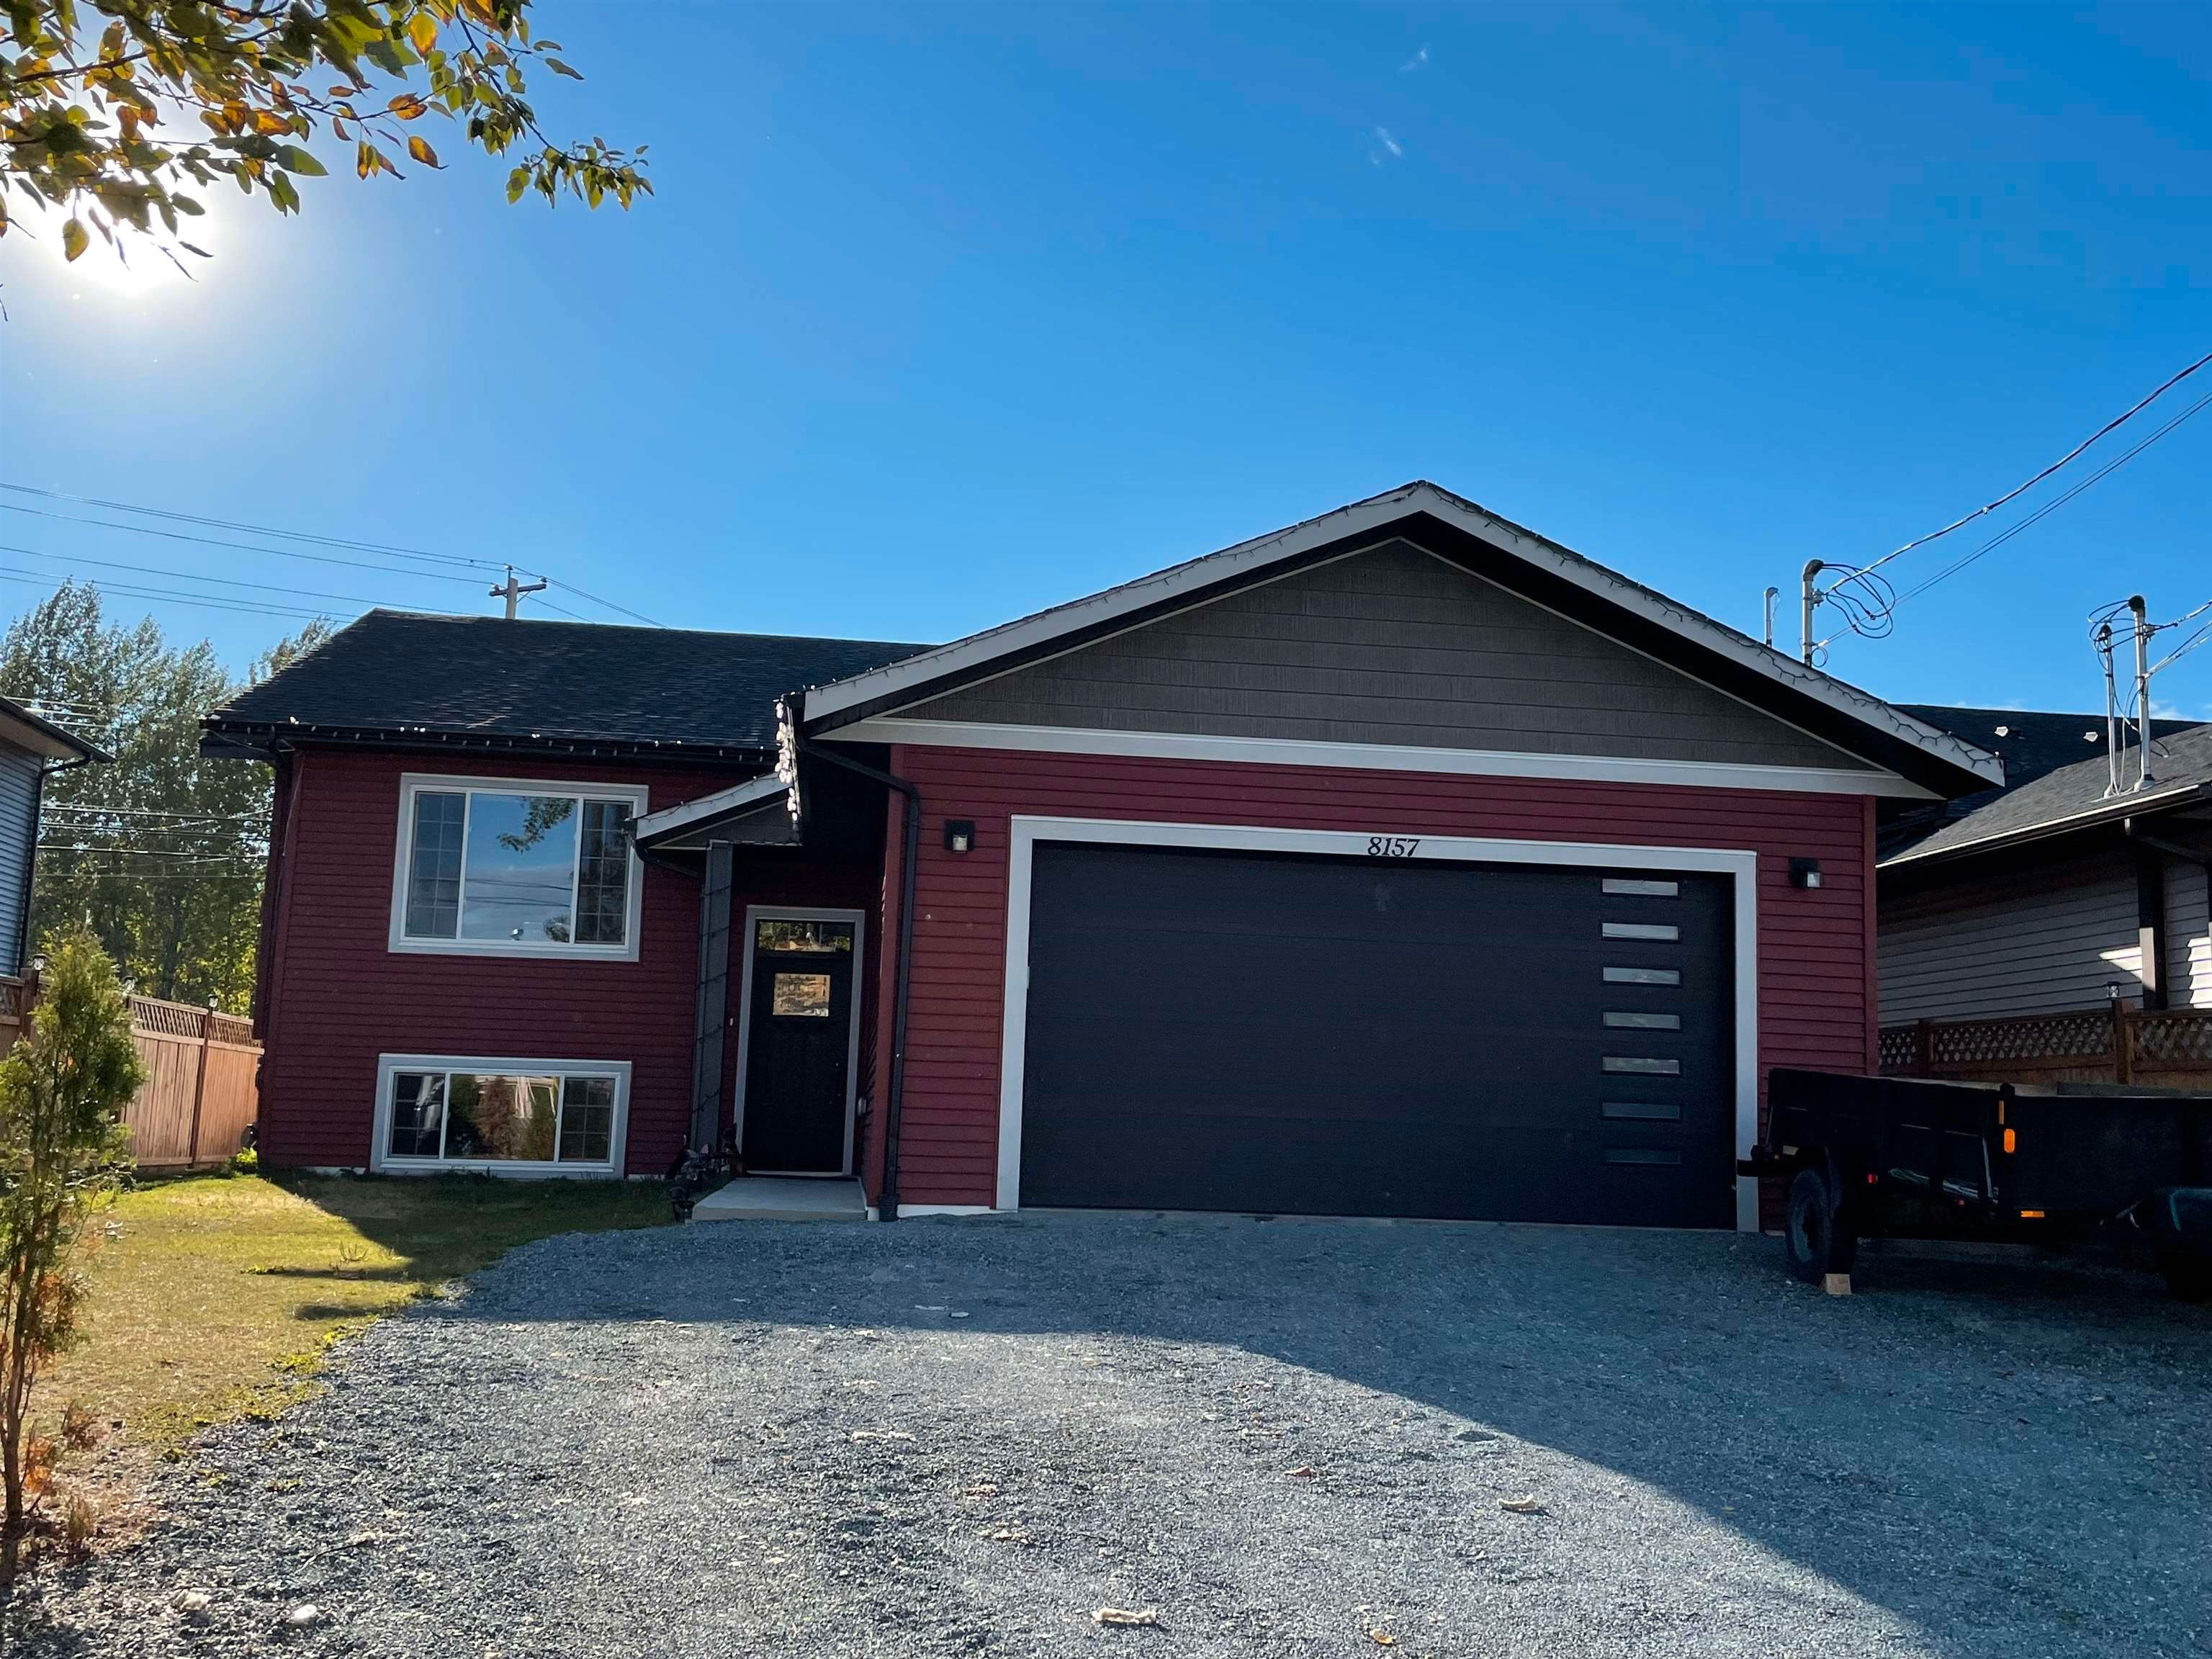 Main Photo: 8157 PETER Road in Prince George: North Kelly House for sale (PG City North (Zone 73))  : MLS®# R2615080